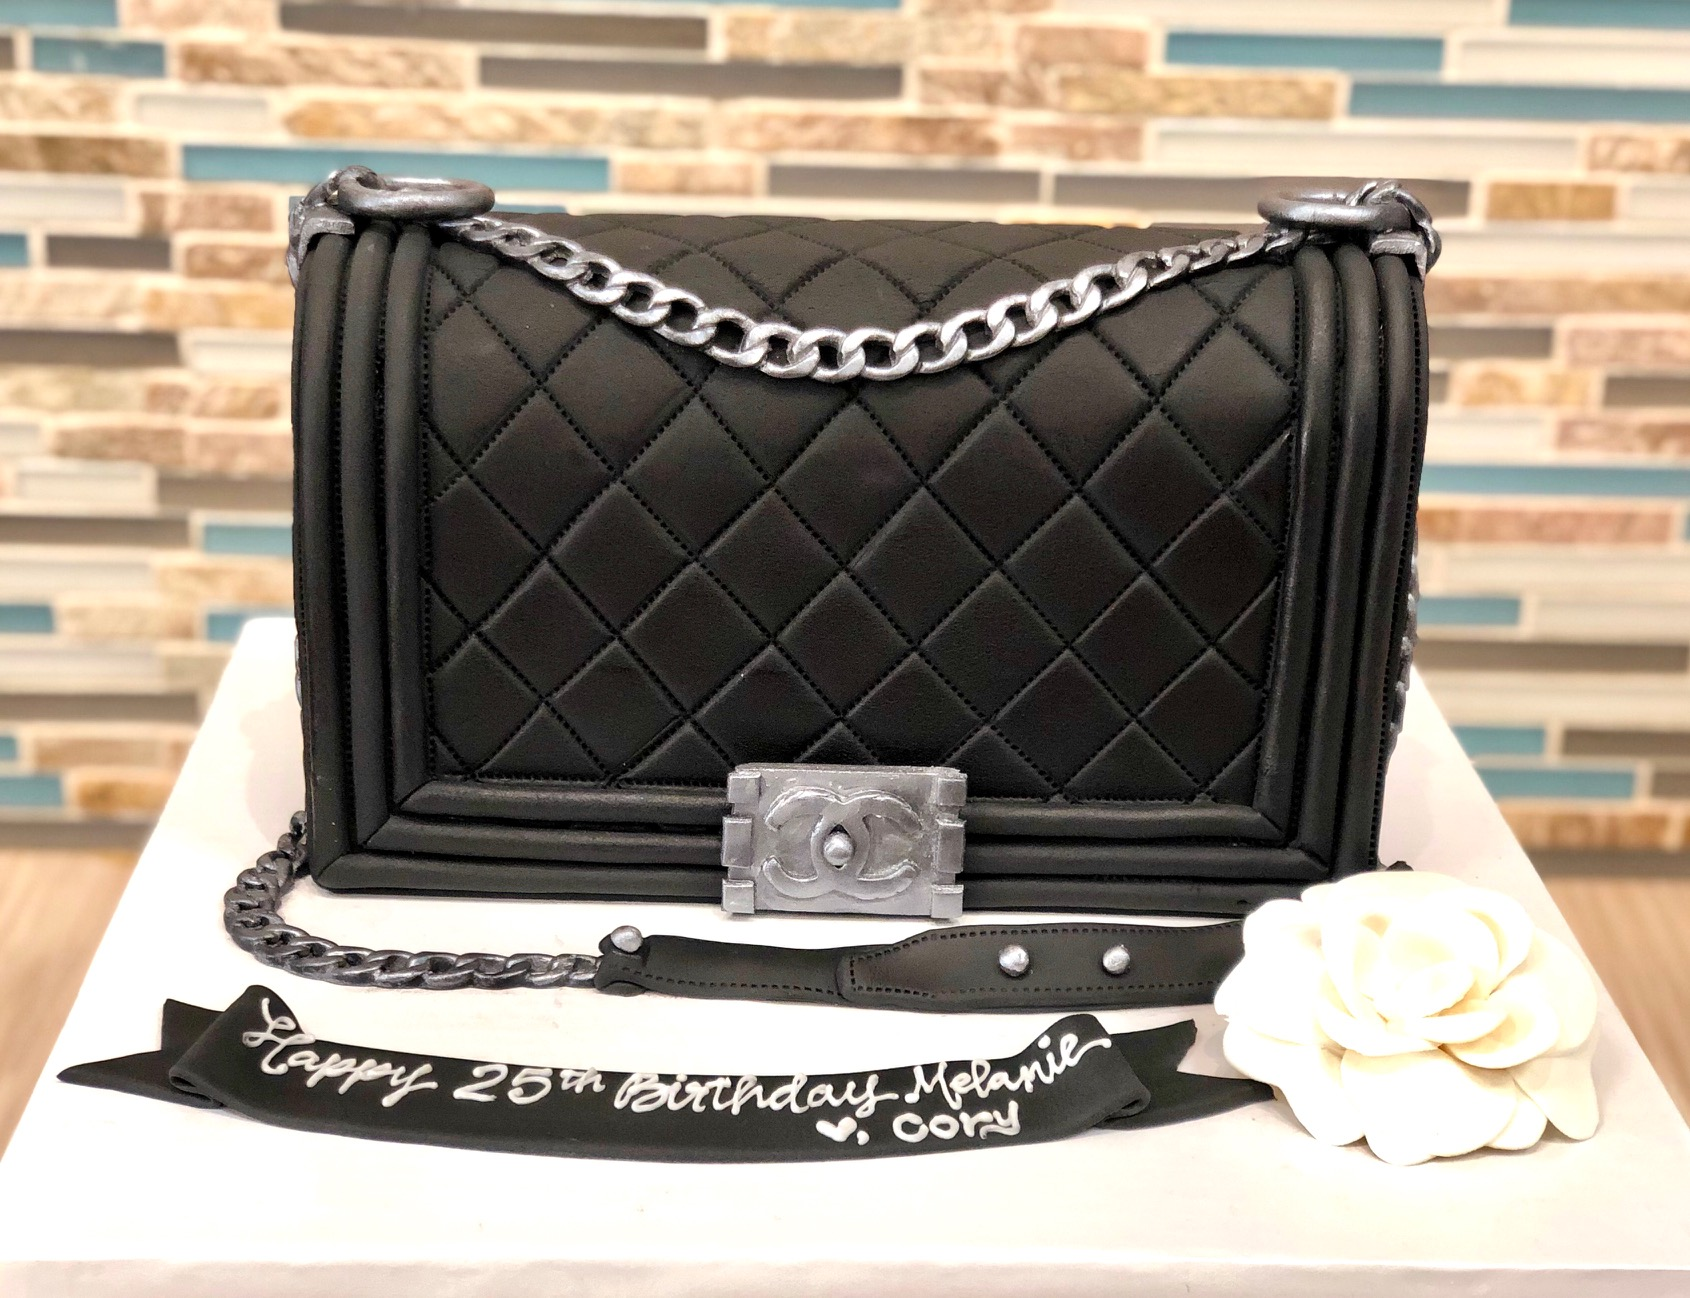 Chanel Boy Bag Custom Cake